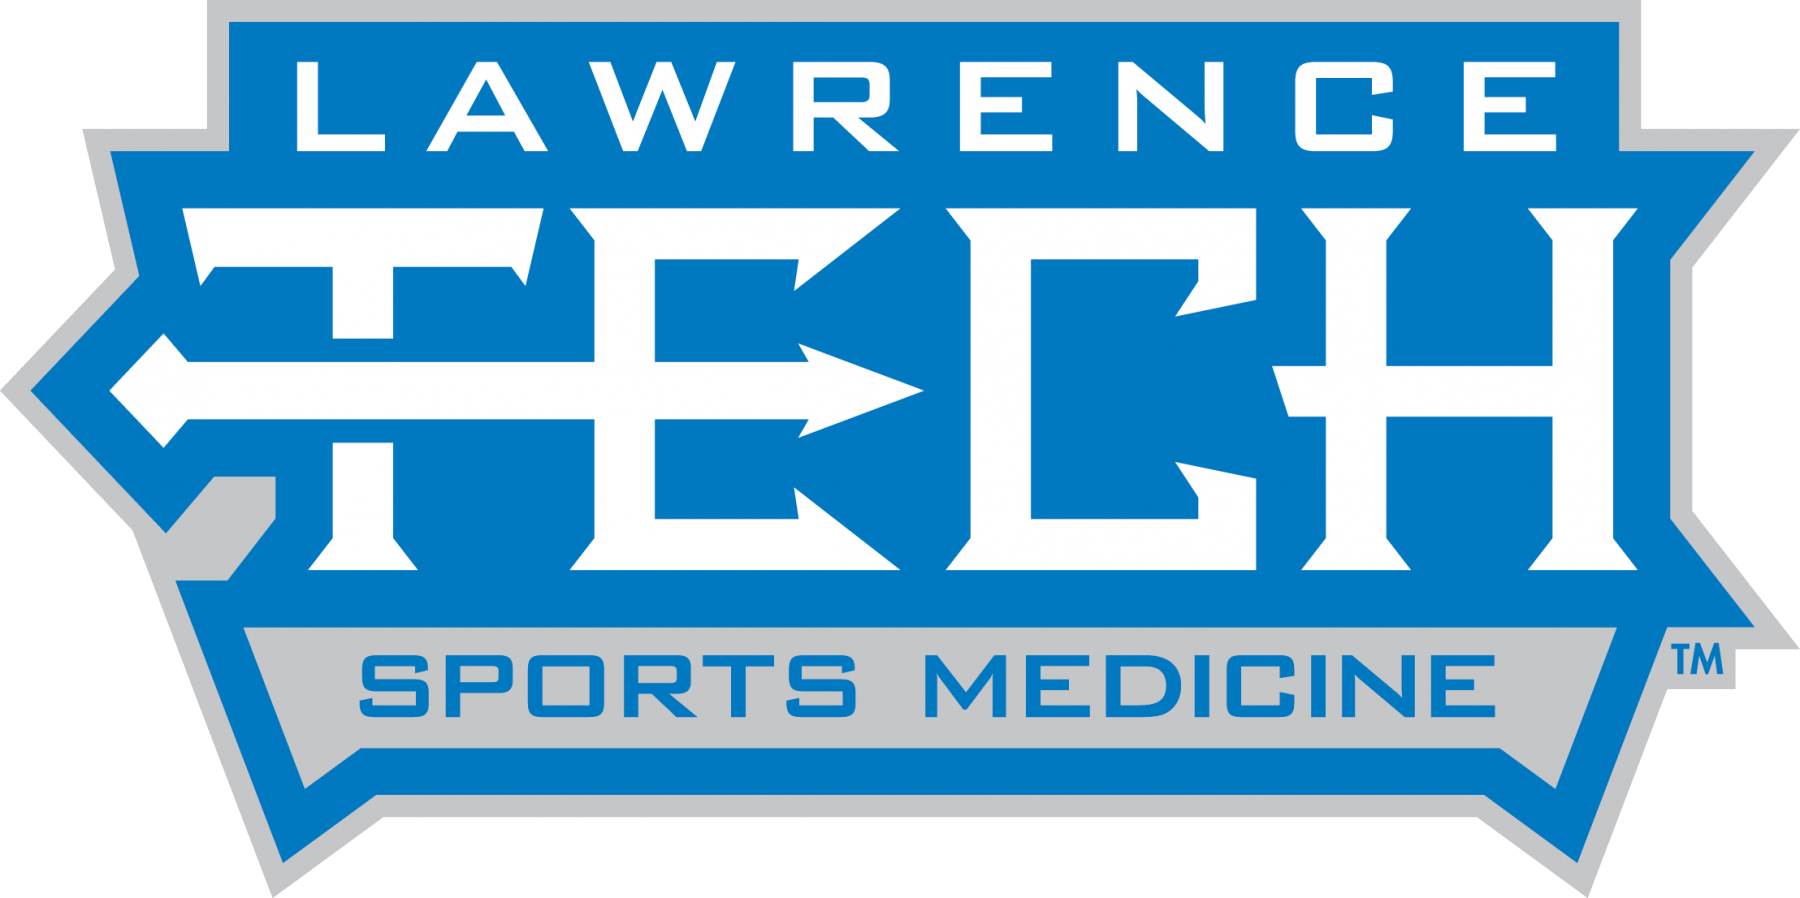 Henry Ford Hospital Campus Map.Lawrence Technological University Sports Medicine Staff